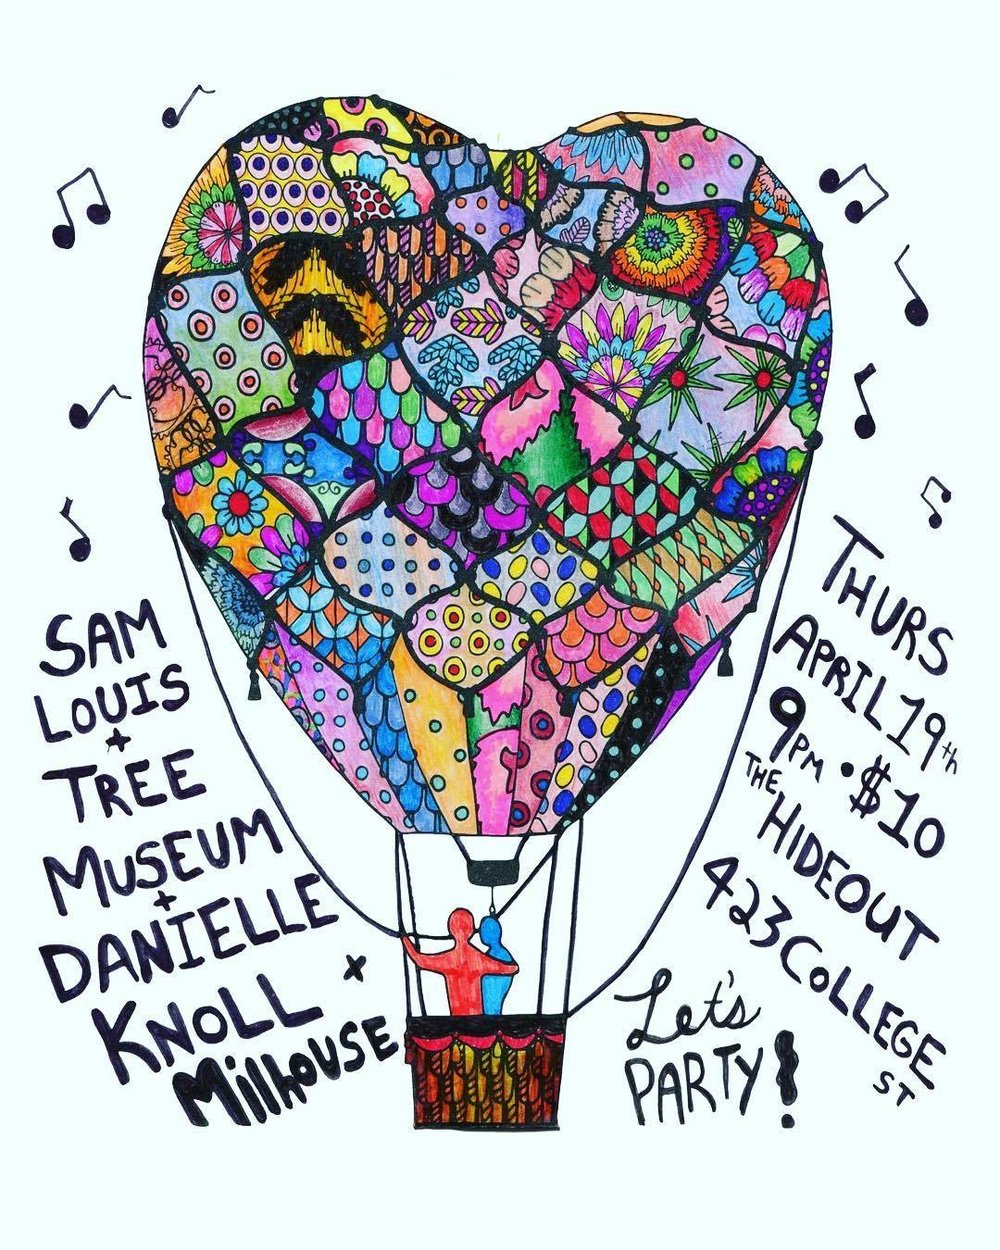 I'm turning 25!!! (on April 23d) And this is how I wanna celebrate it! Come out and say hey and dance and sing and drink and laugh and party with me! Yay birthday!  thurs april 19th doors 8:30pm cover $10   Sam Louis  @ 9:00pm  Danielle Knoll  @ 10:00pm  Tree Museum  @ 11:00pm  Milhouse  @ 12:00am